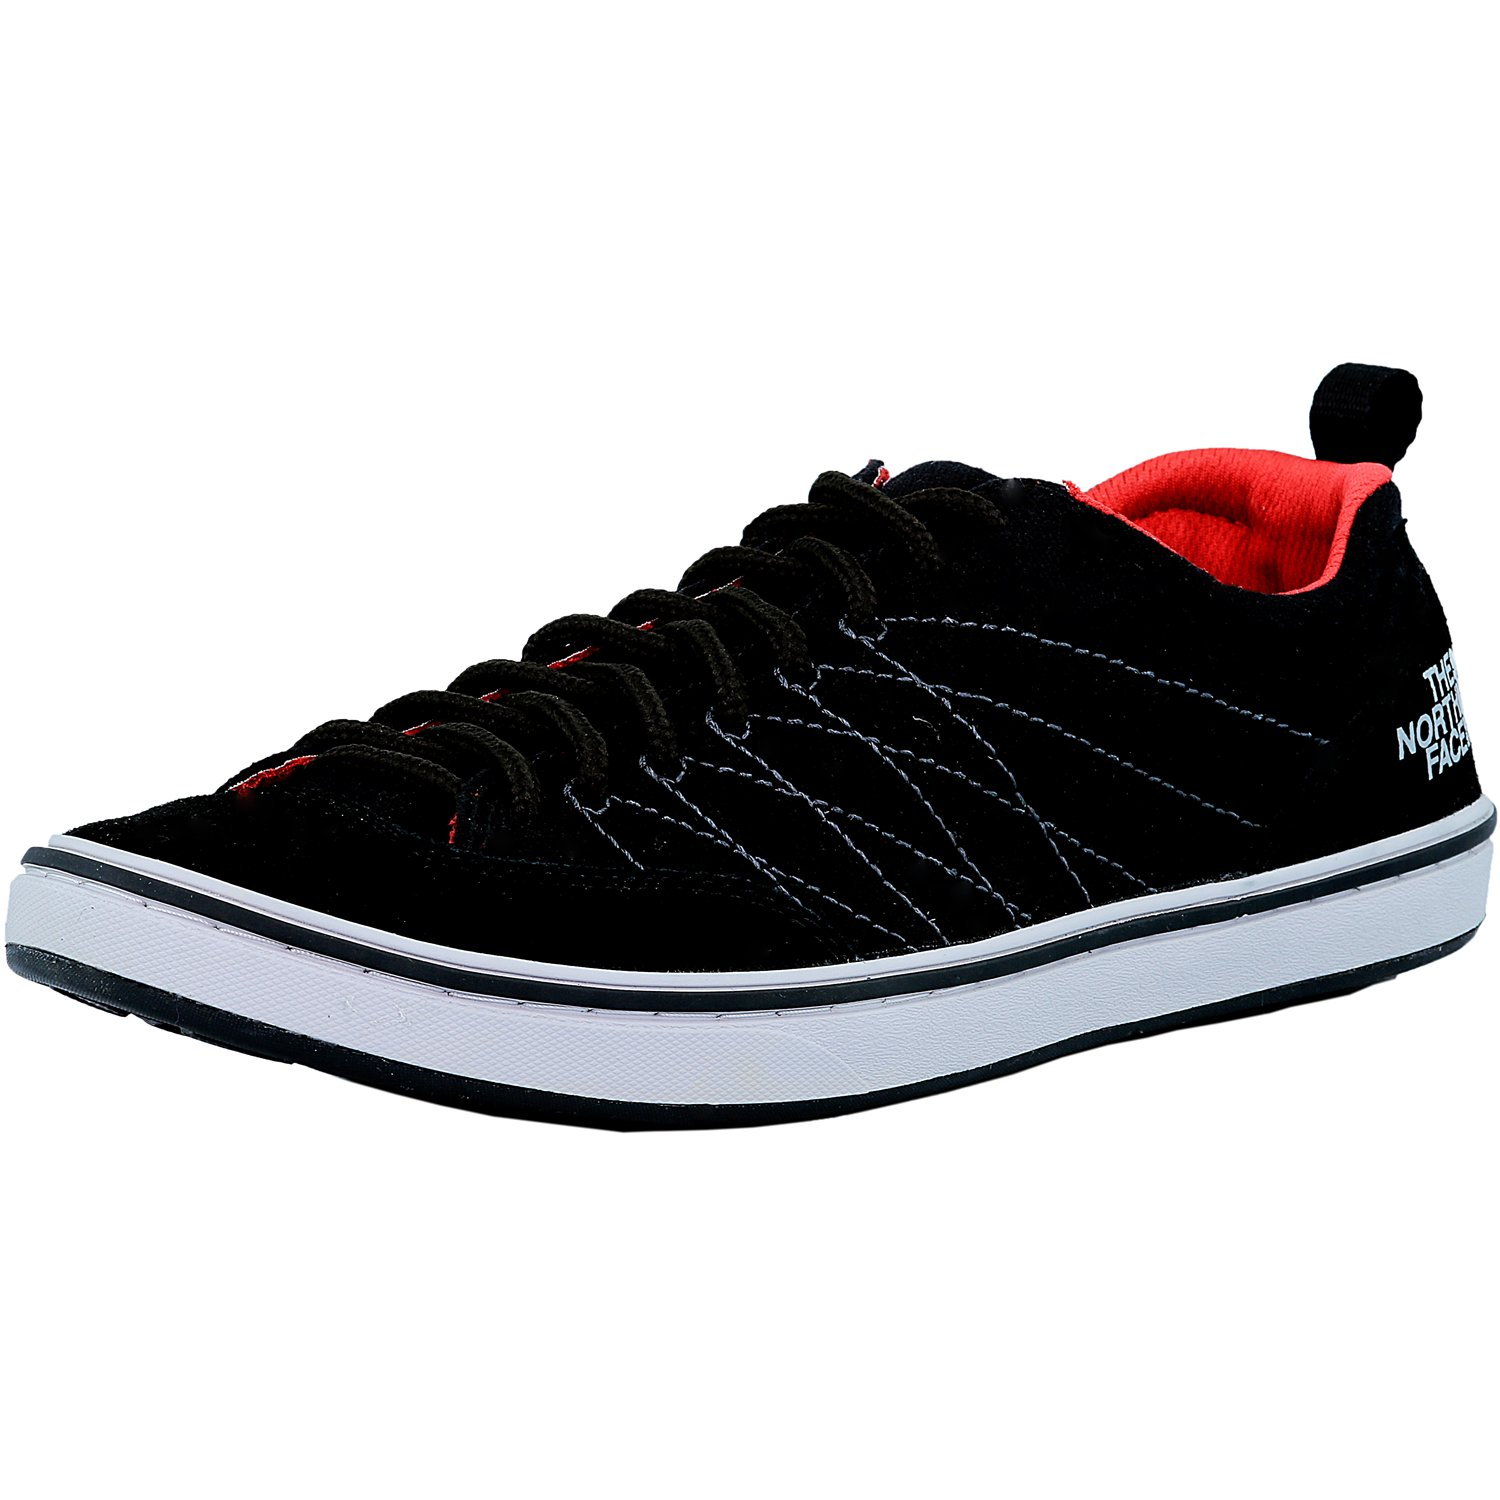 The North Face Men's Base Camp Approach Tnf Black/Tnf Red Ankle-High Fabric Fashion Sneaker - 8M